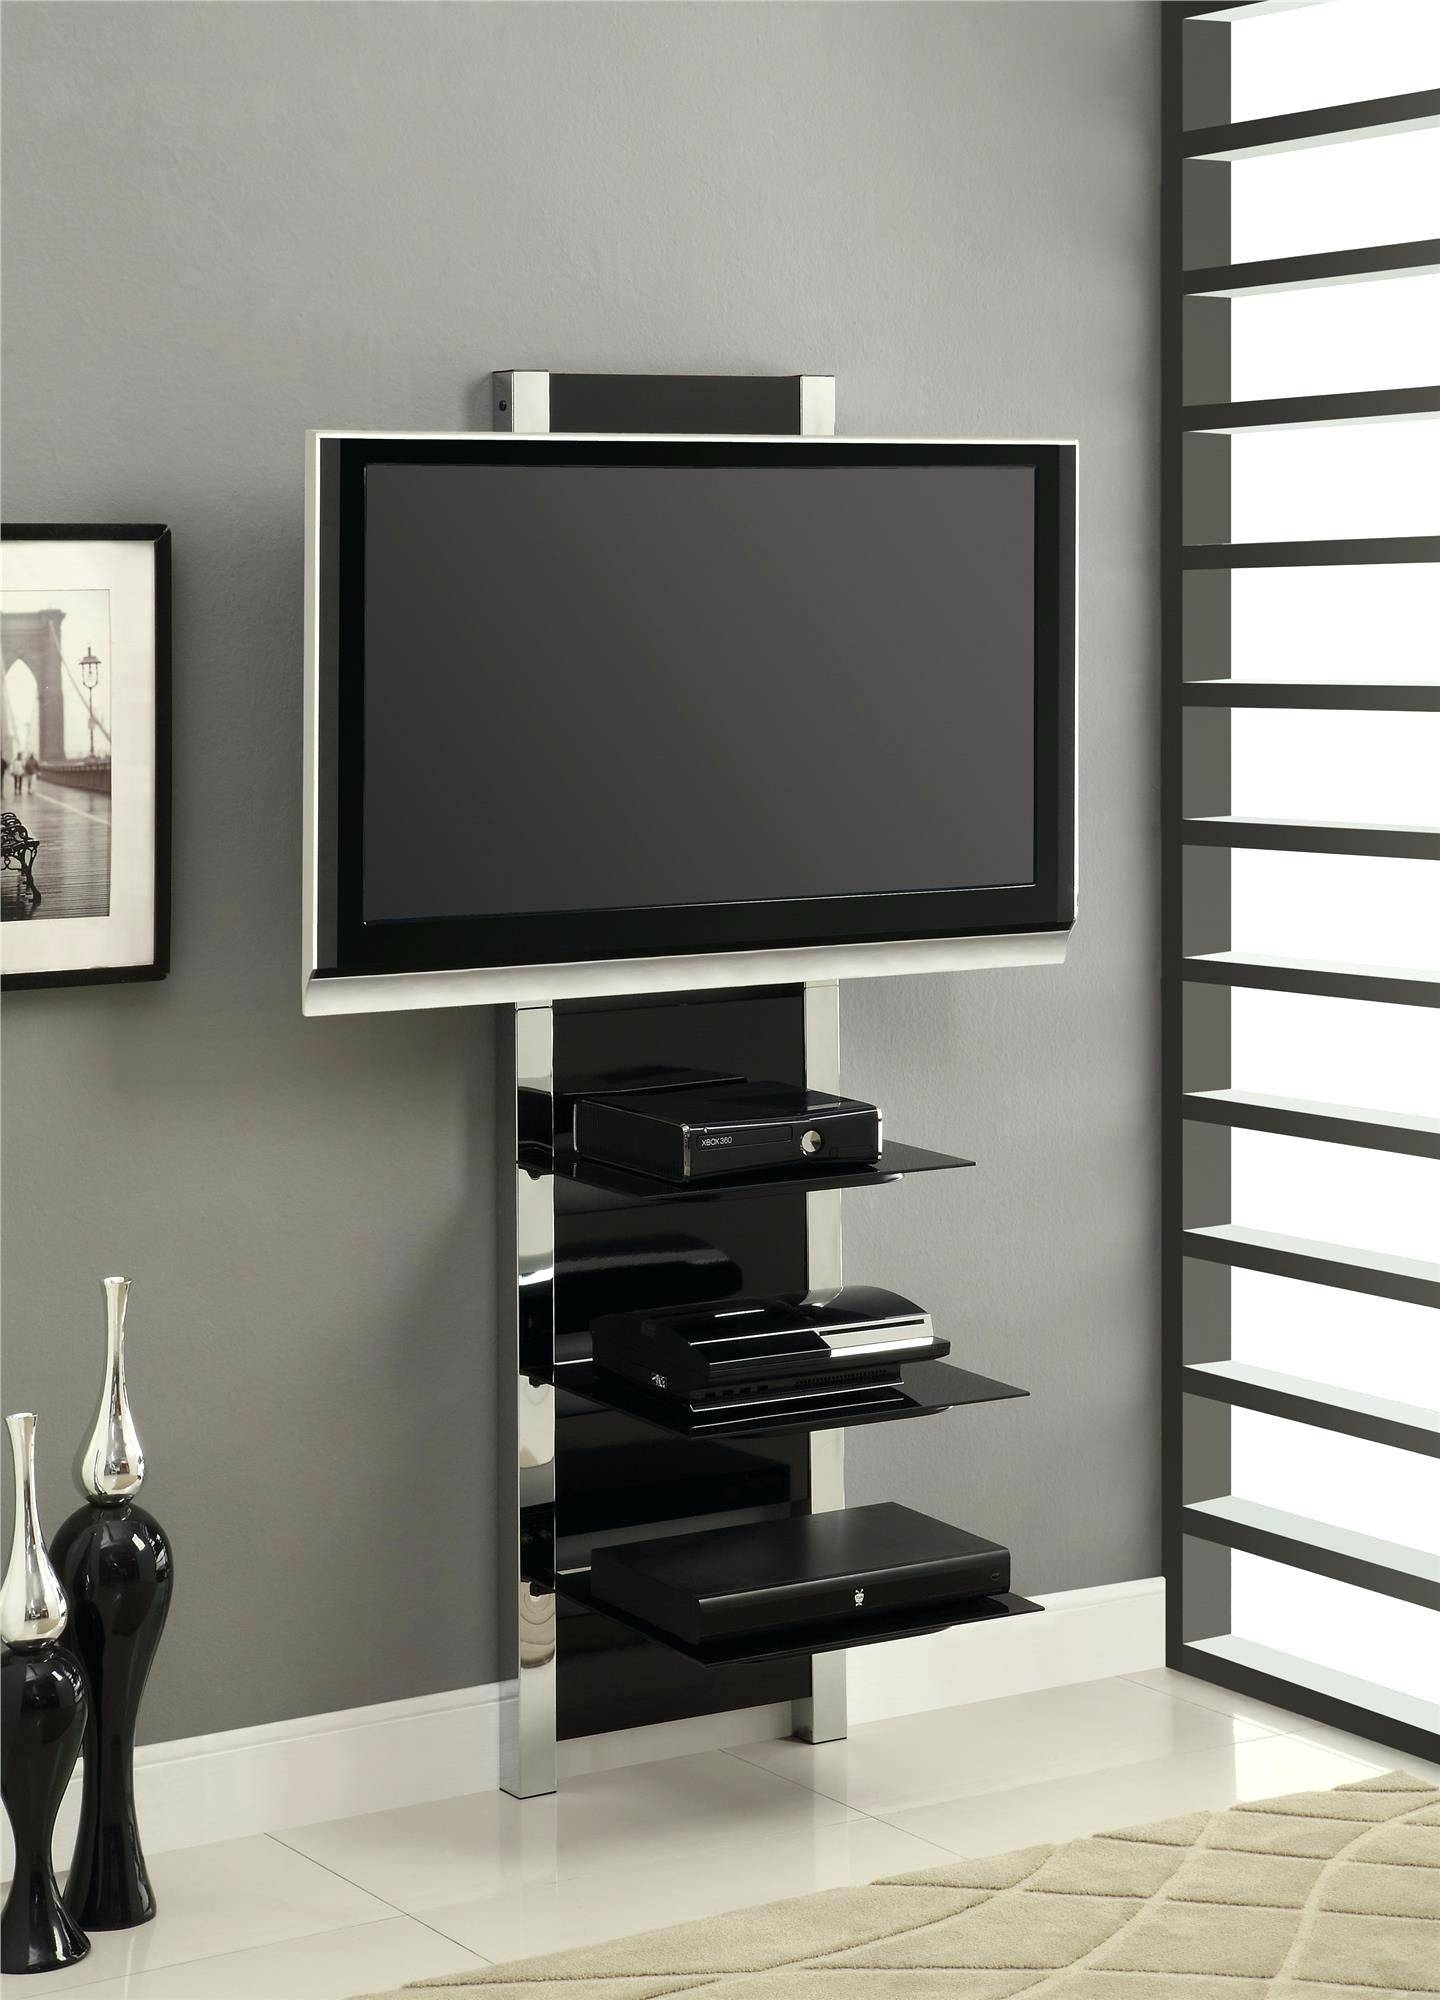 Articles With Sleek Tv Stand With Mount Tag: Appealing Sleek Tv with regard to Sleek Tv Stands (Image 1 of 15)